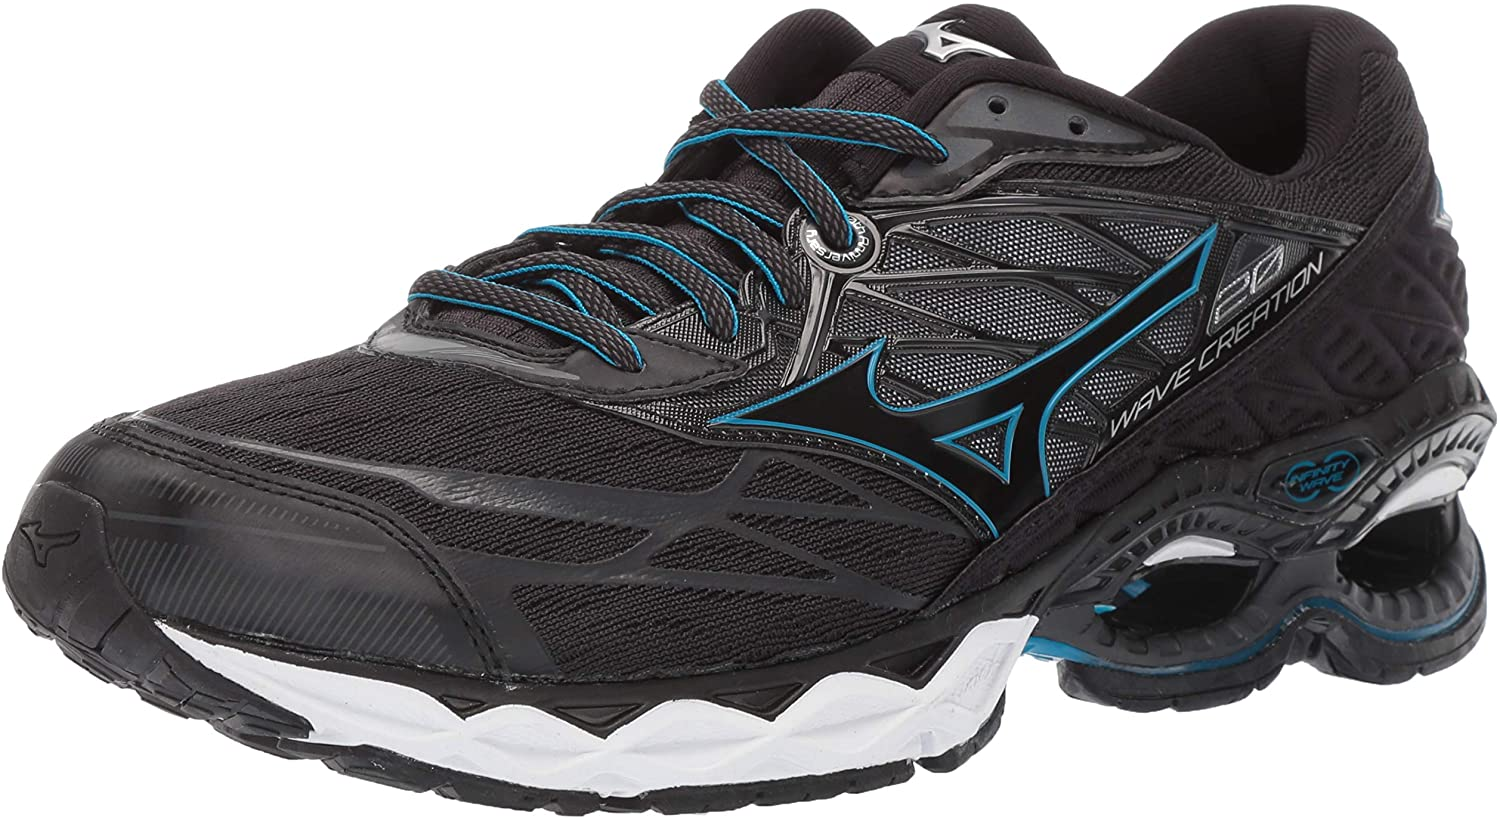 Mizuno Wave Creation 20, Zapatillas de Running para Hombre: Amazon.es: Zapatos y complementos